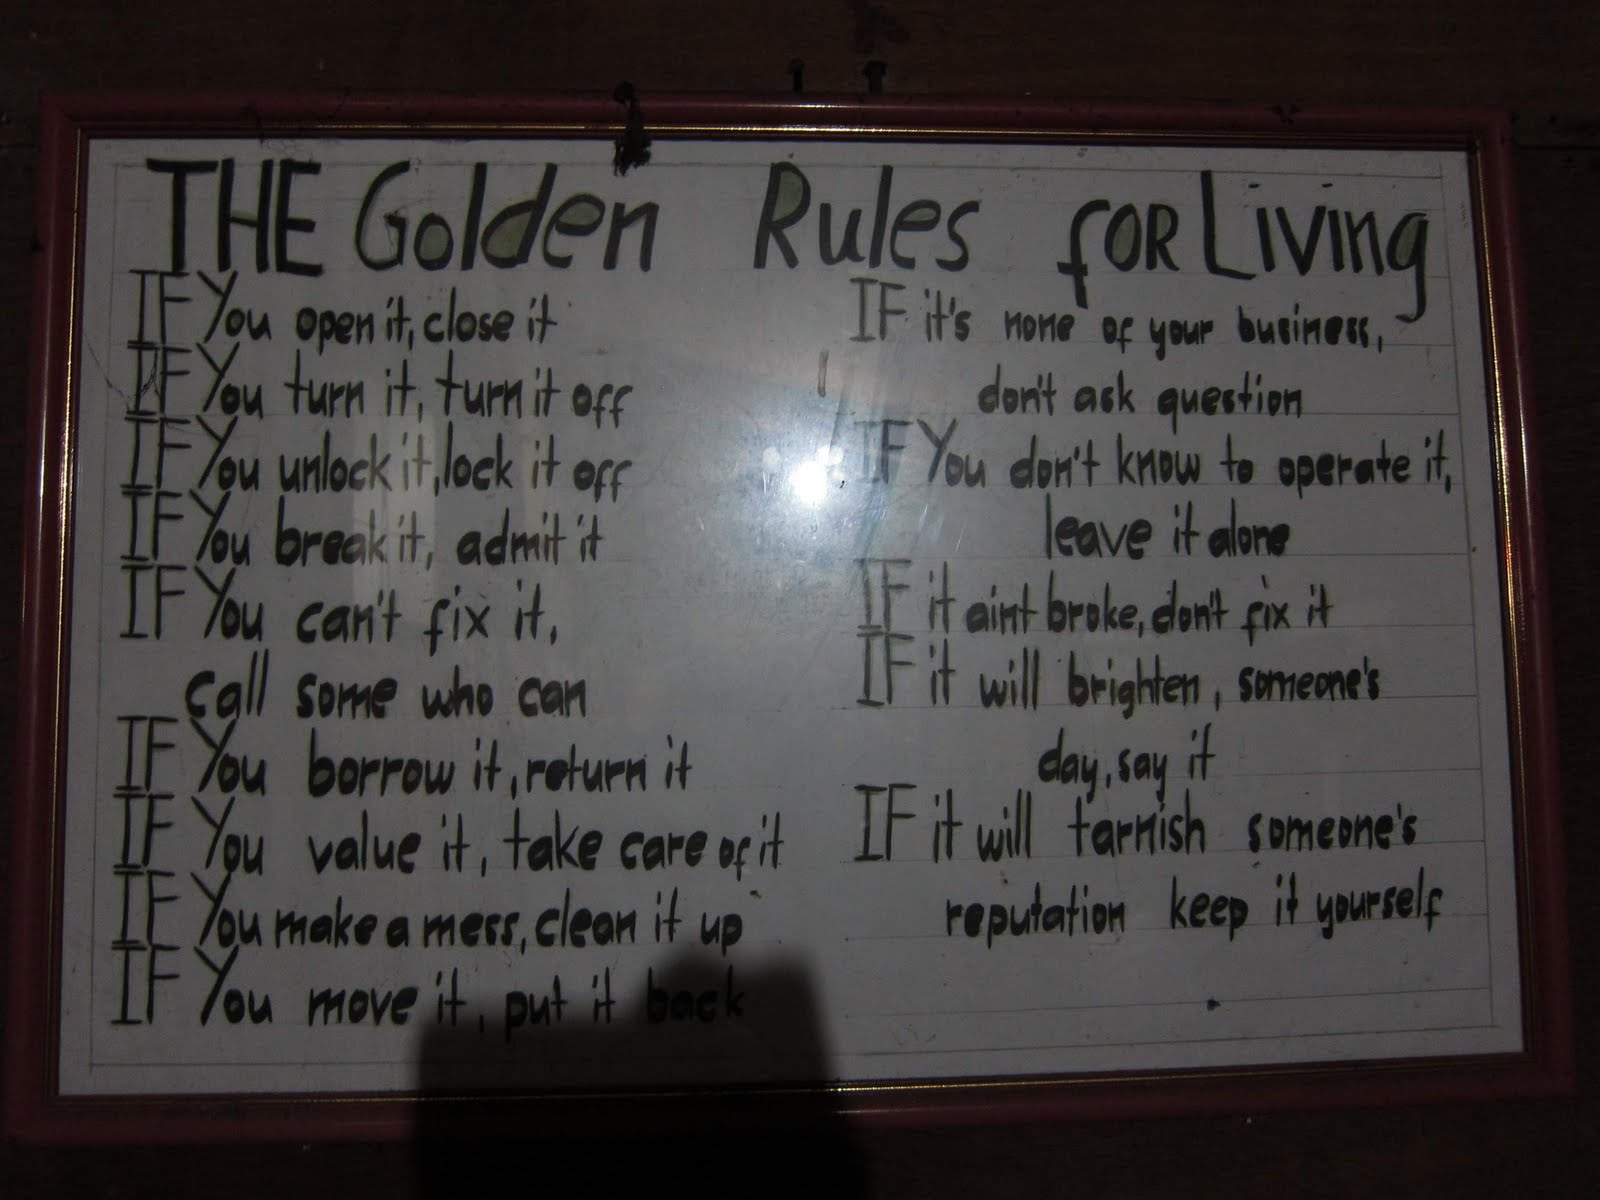 JVF: The Golden Rules for Living